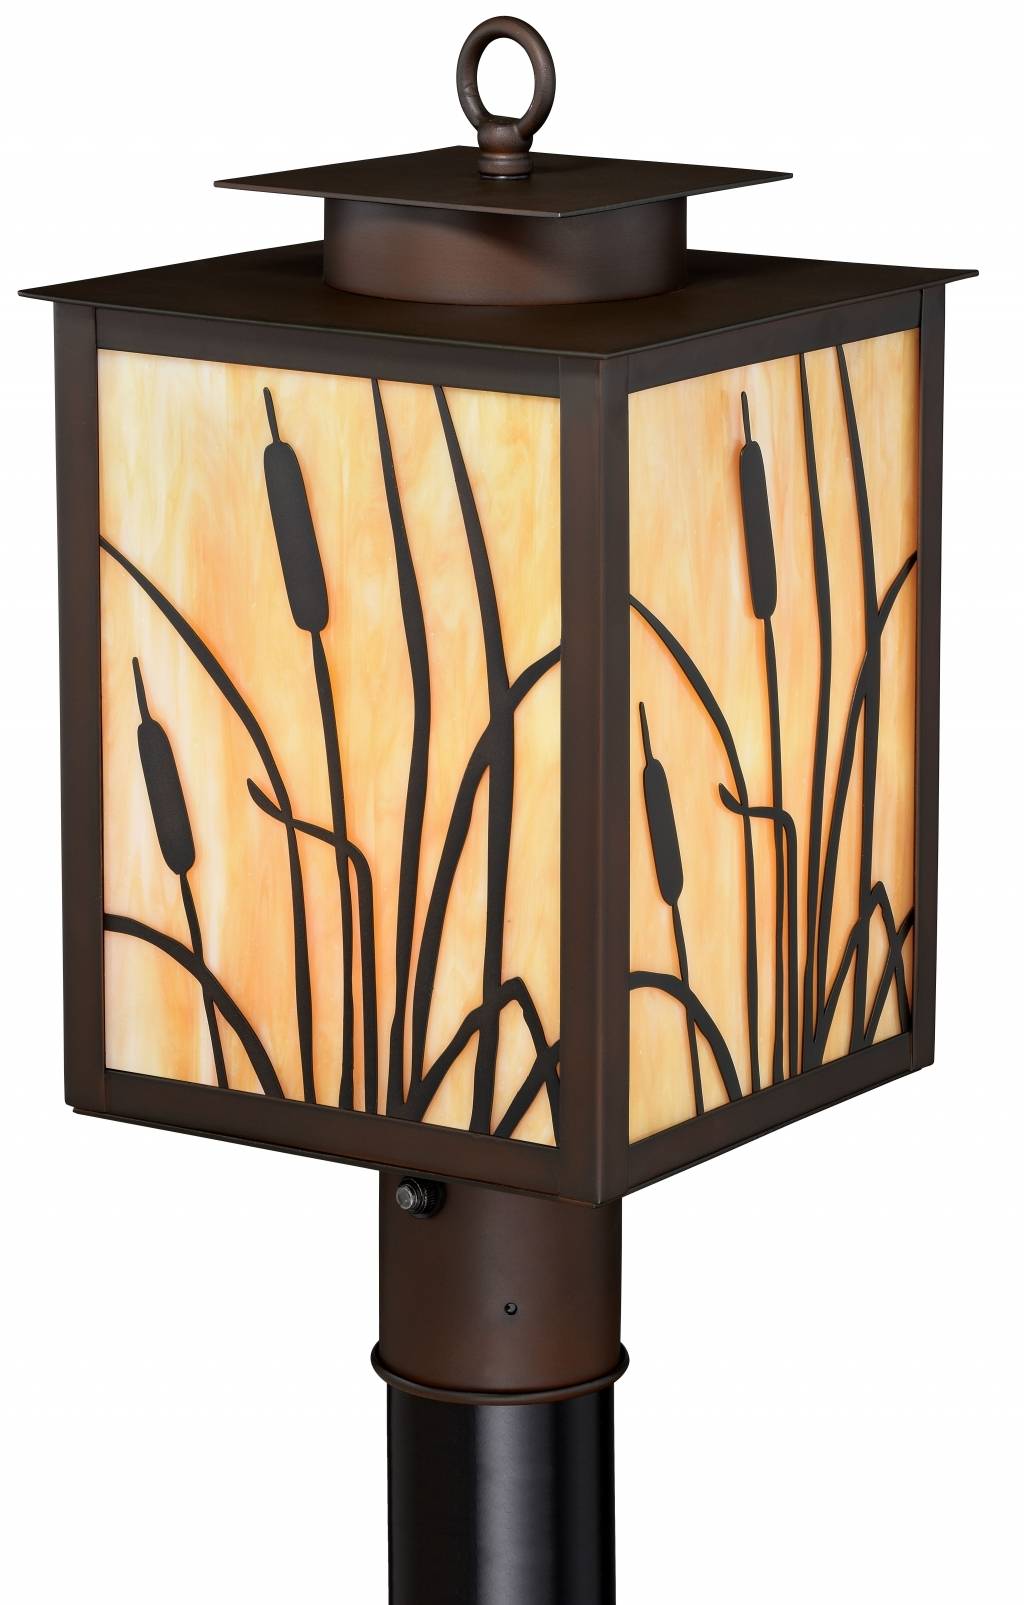 Etsy Outdoor Lanterns Inside Most Recently Released Rustic Style: Rustic Wall Sconce Awesome Etsy Set Of 2 Lanterns (View 5 of 20)